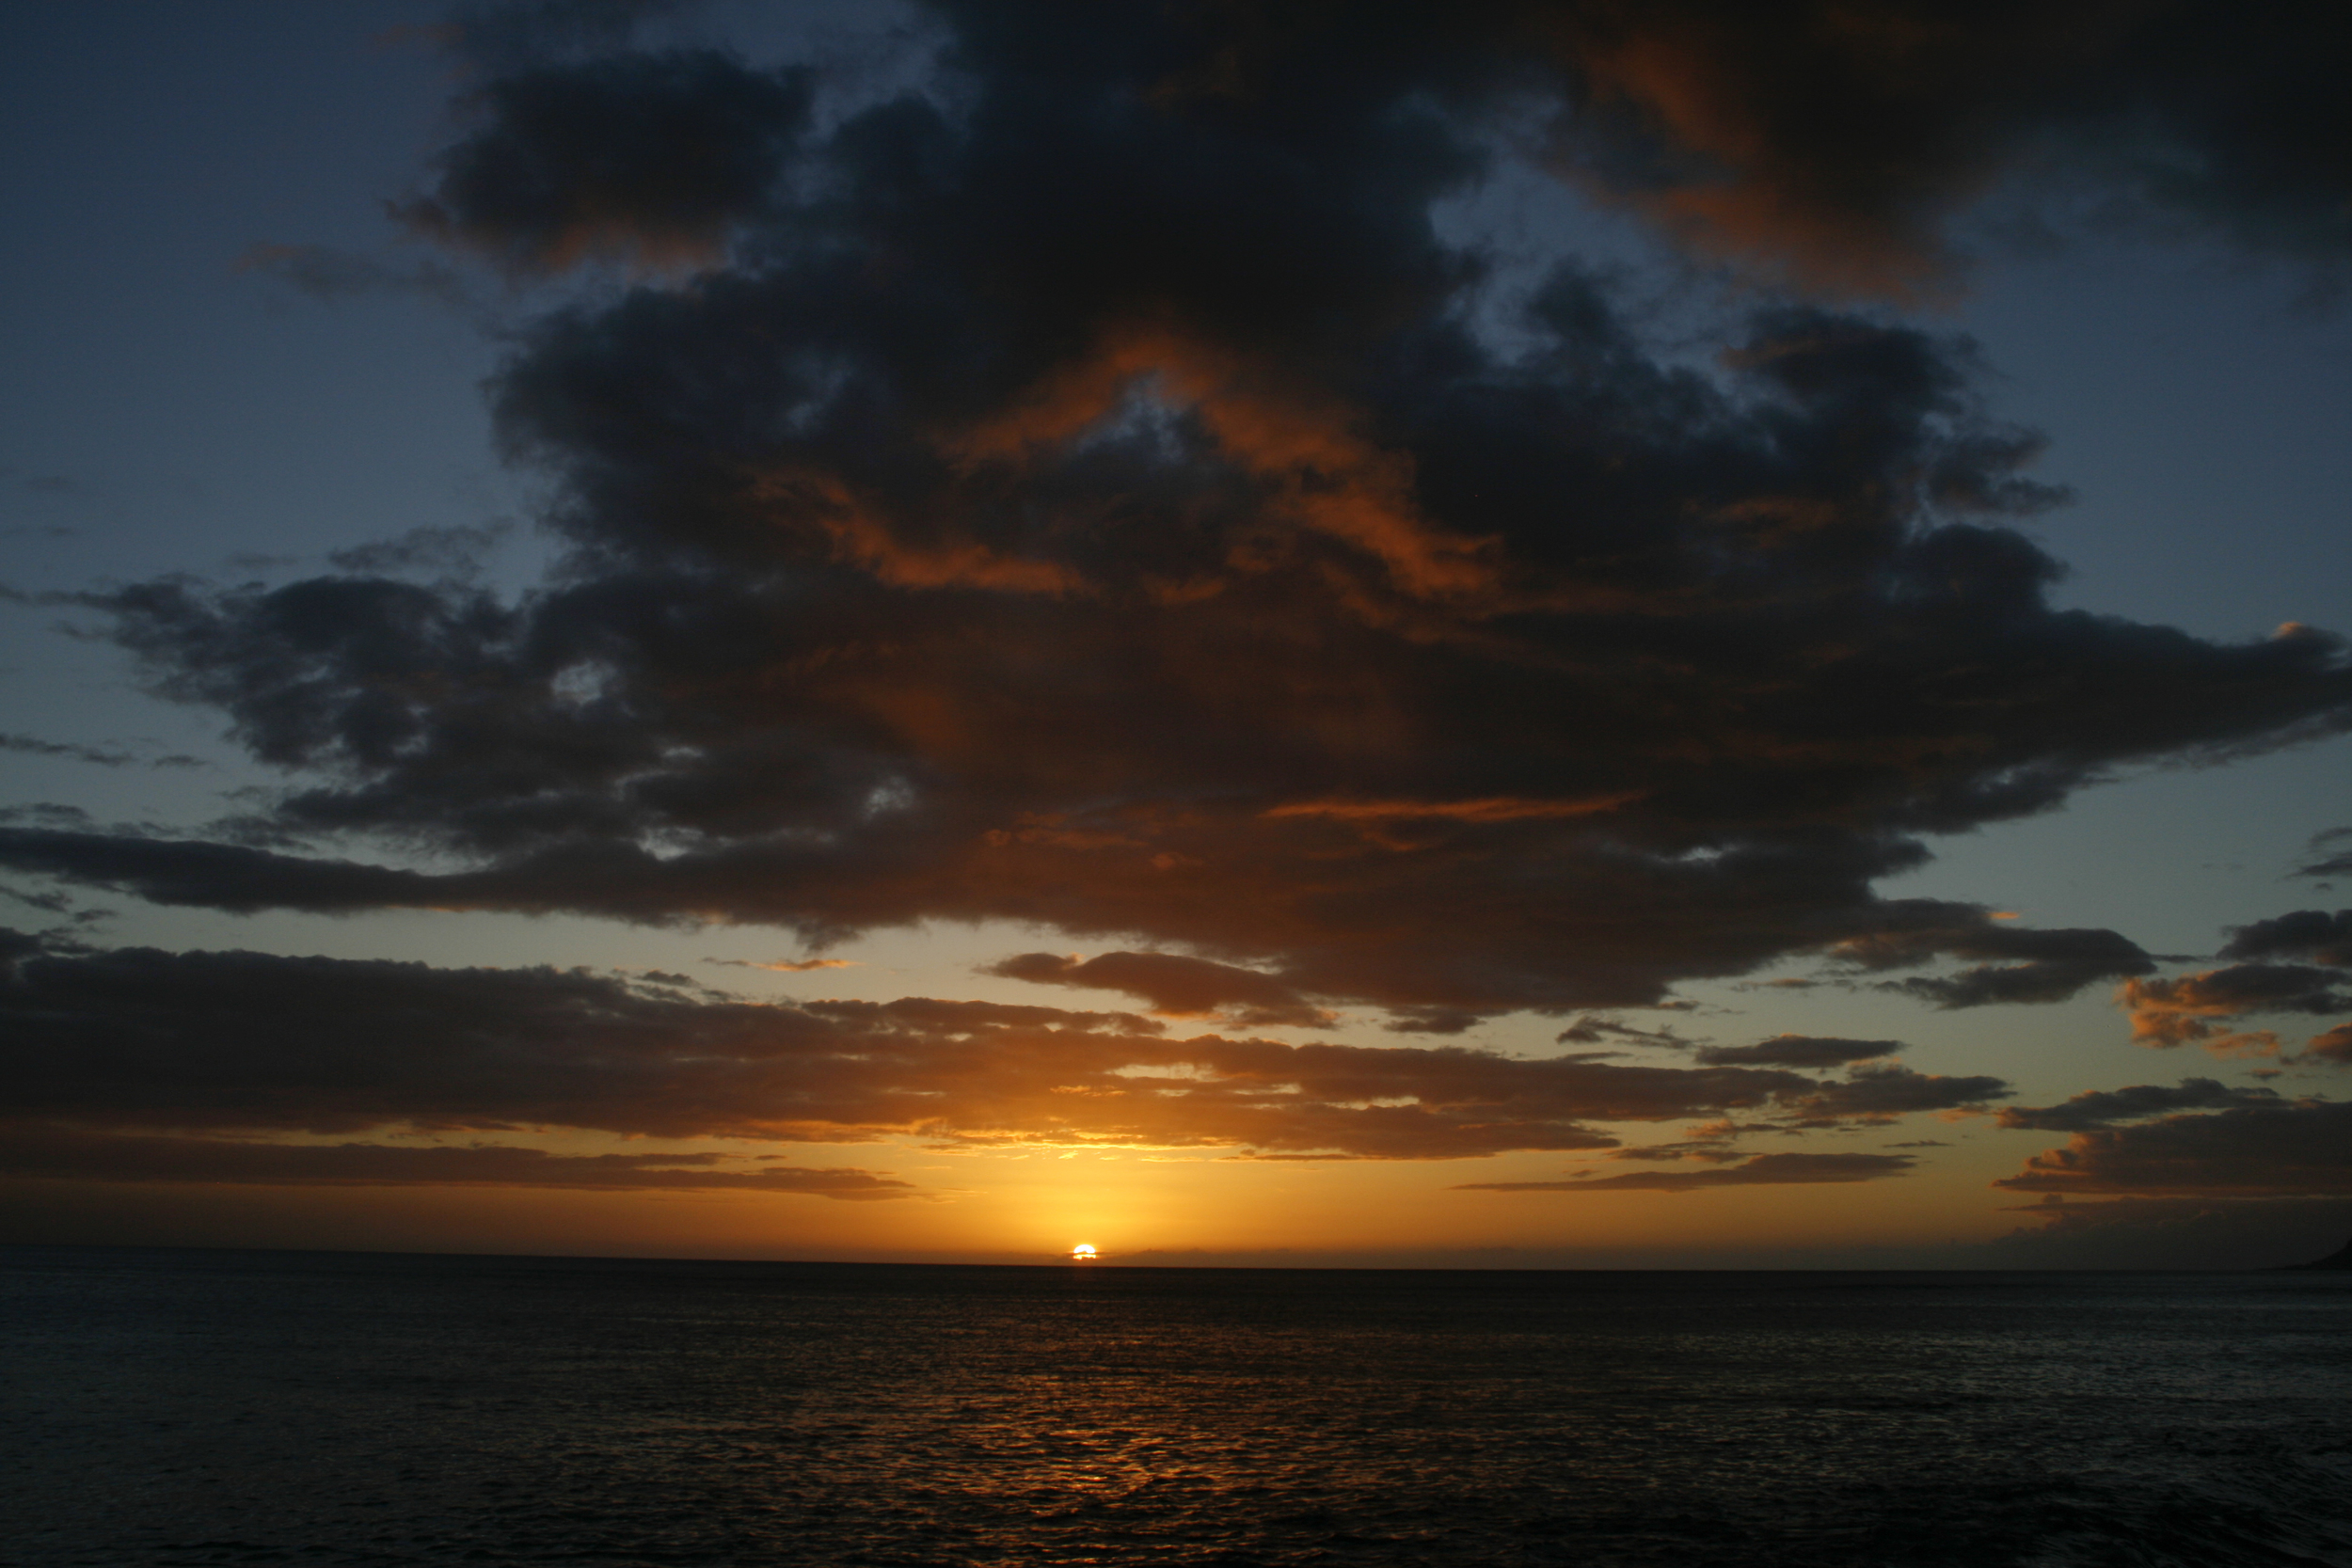 One of the most gorgeous sights I've ever laid eyes on... The Hawaiian Sunset.